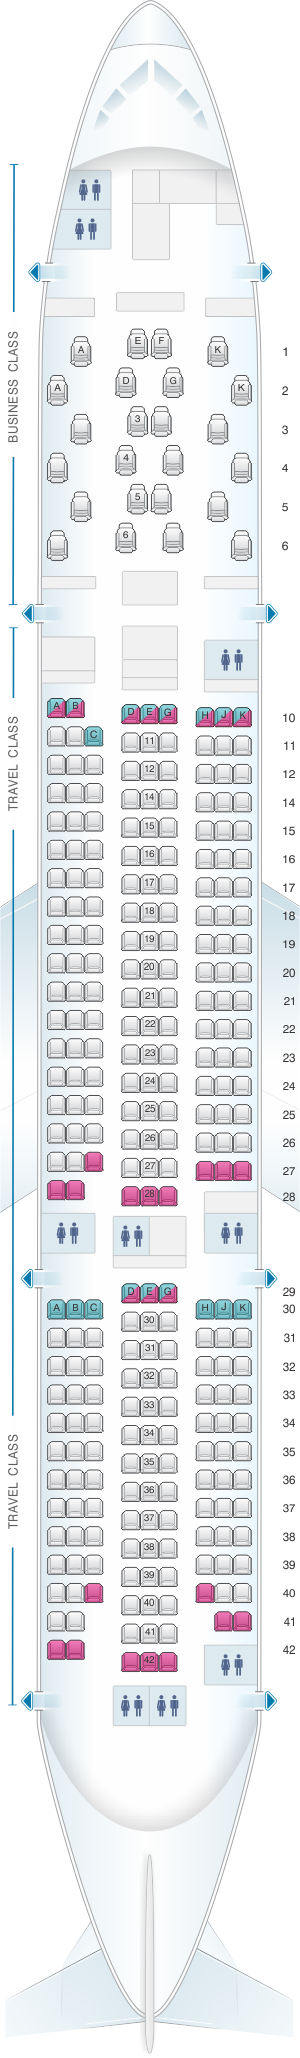 Seat map for Asiana Airlines Boeing B777 200ER 295PAX